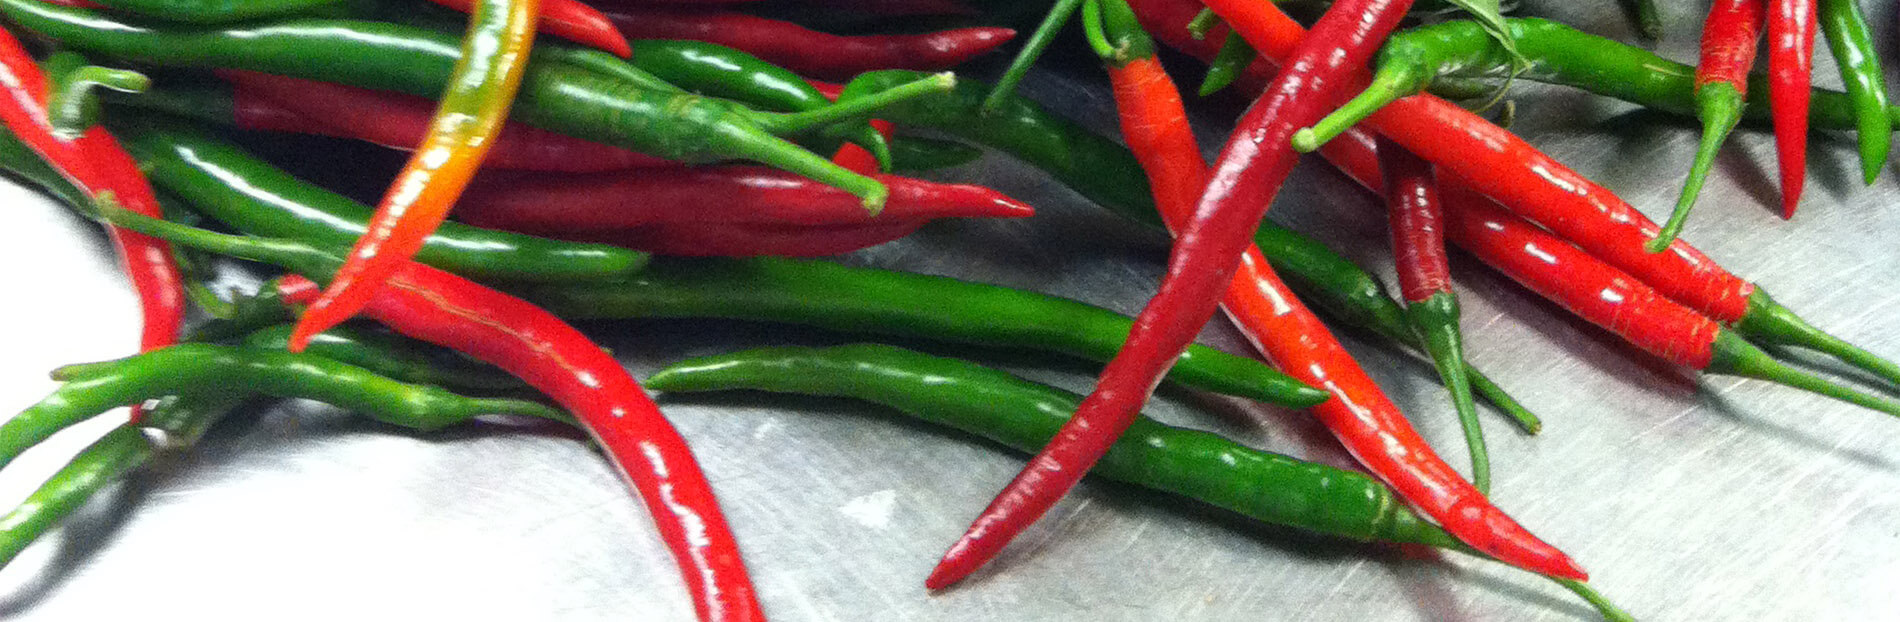 Pile of green and red hot peppers